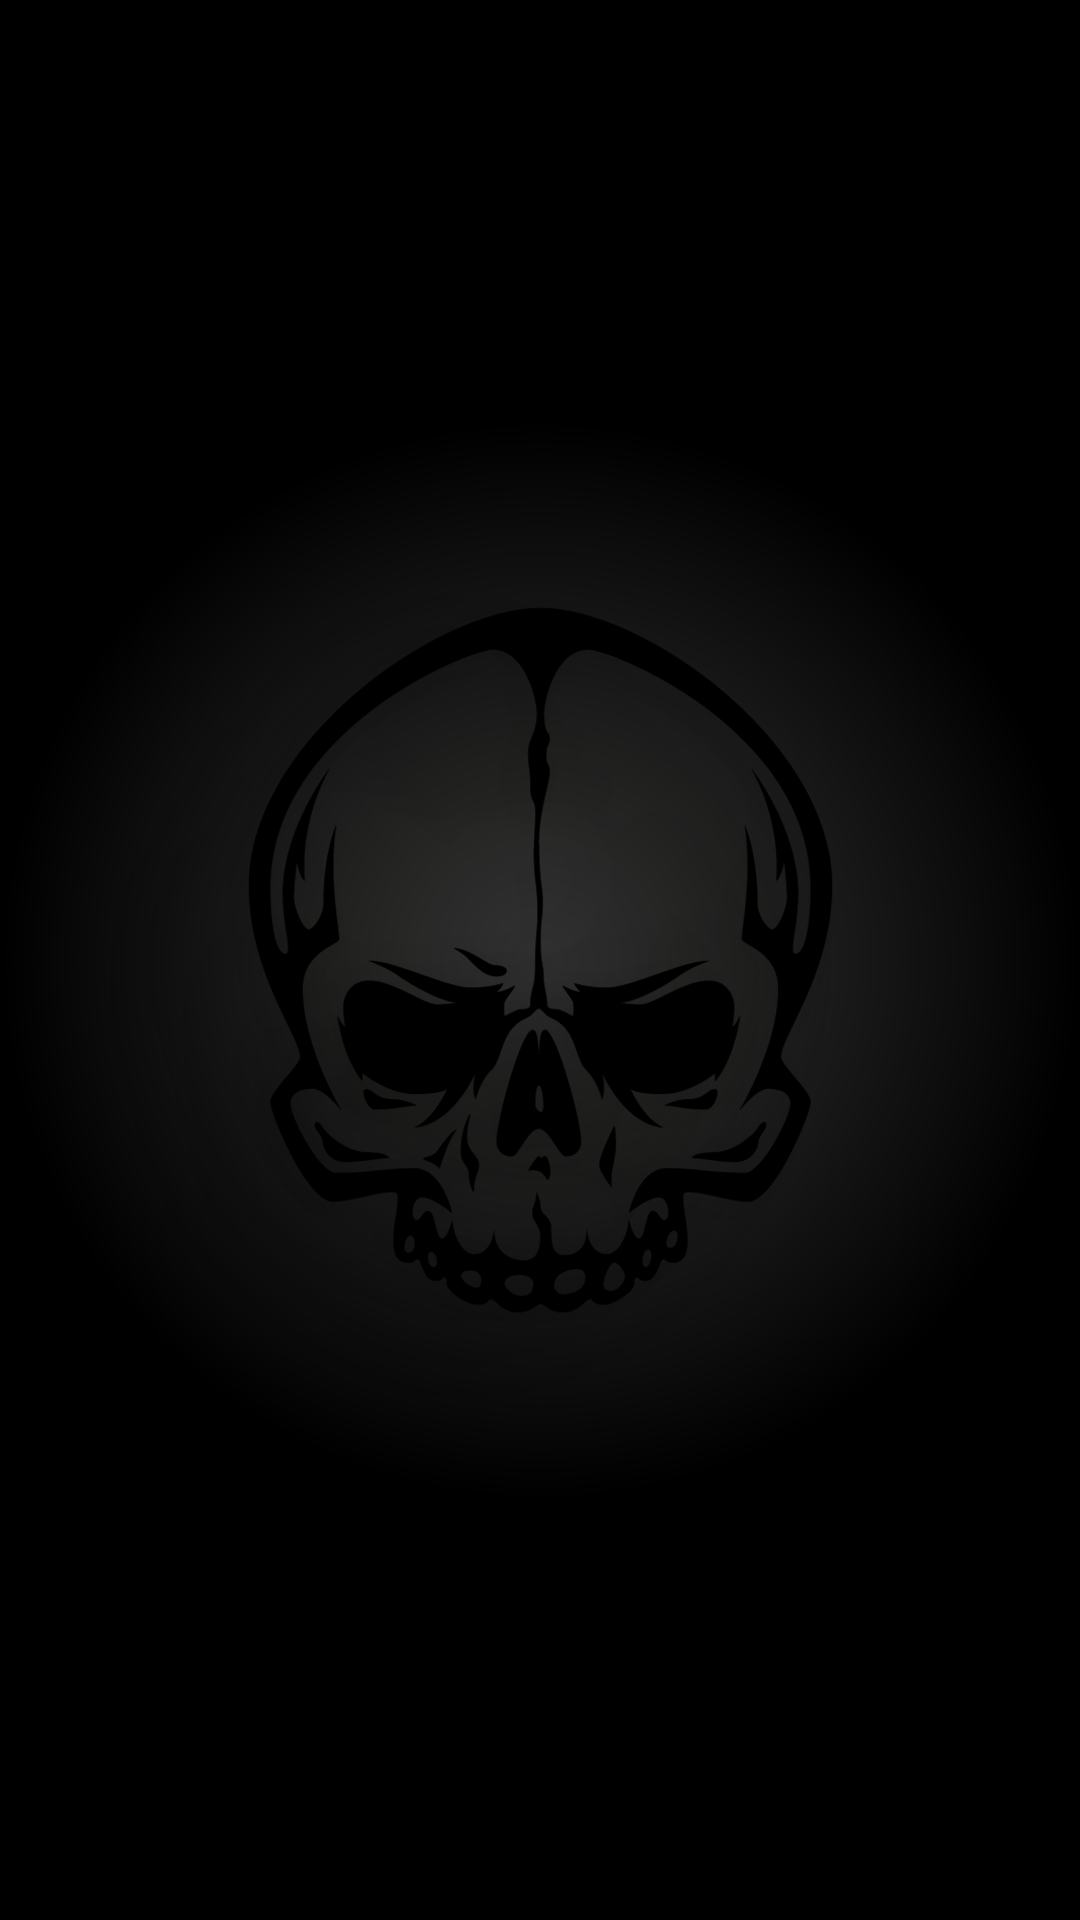 download our hd black skull wallpaper for android phones 0037